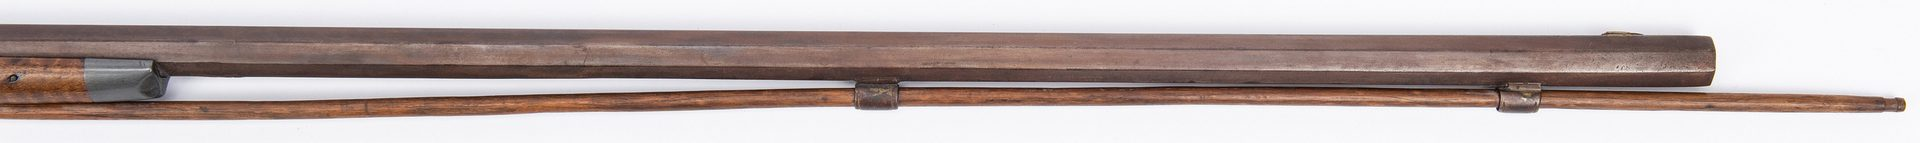 Lot 374: Percussion Long Rifle and Vicksburg Commission, 2 items